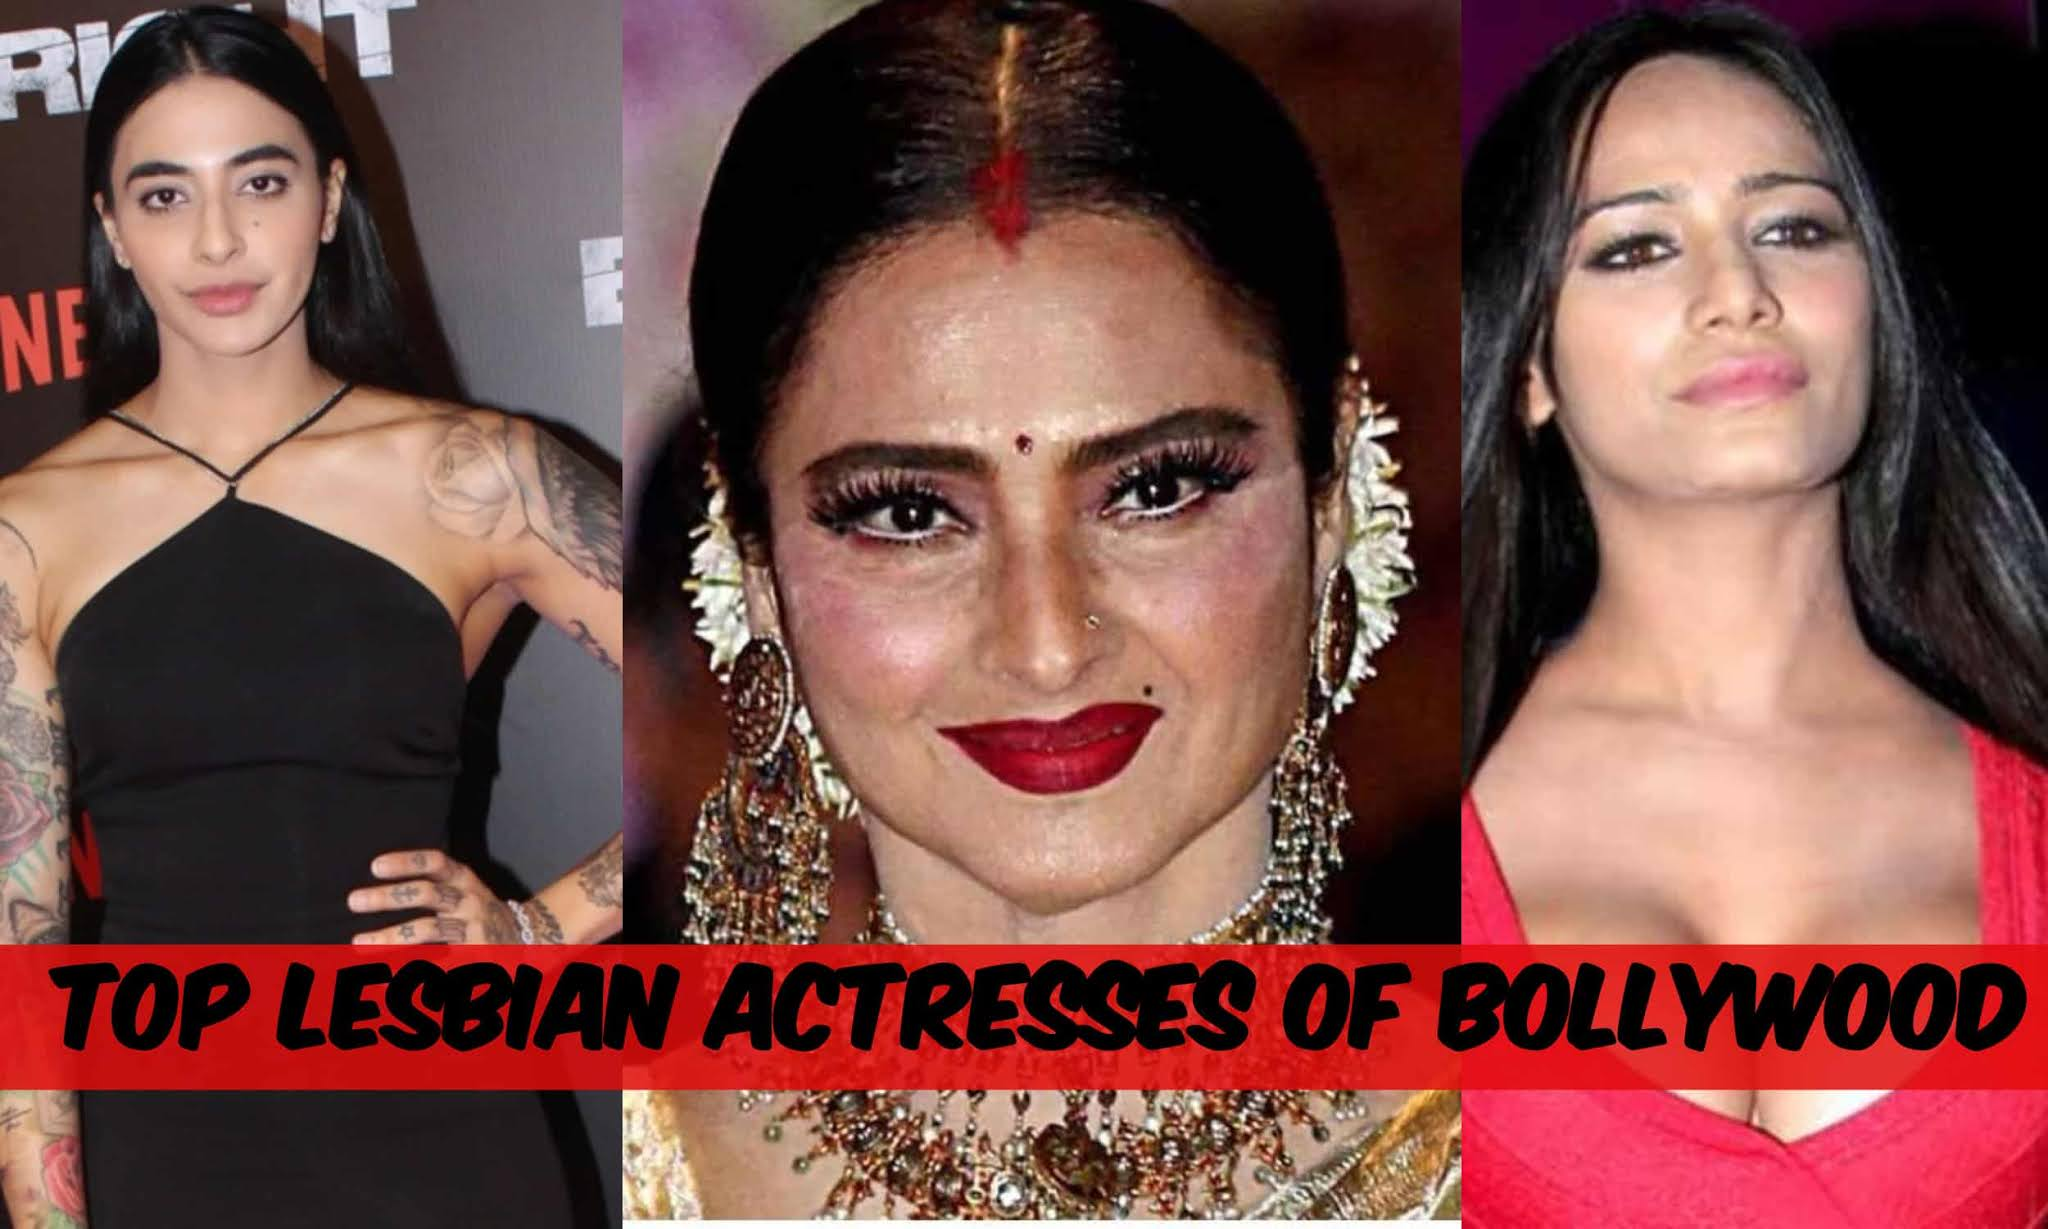 top lesbian actresses of Bollywood